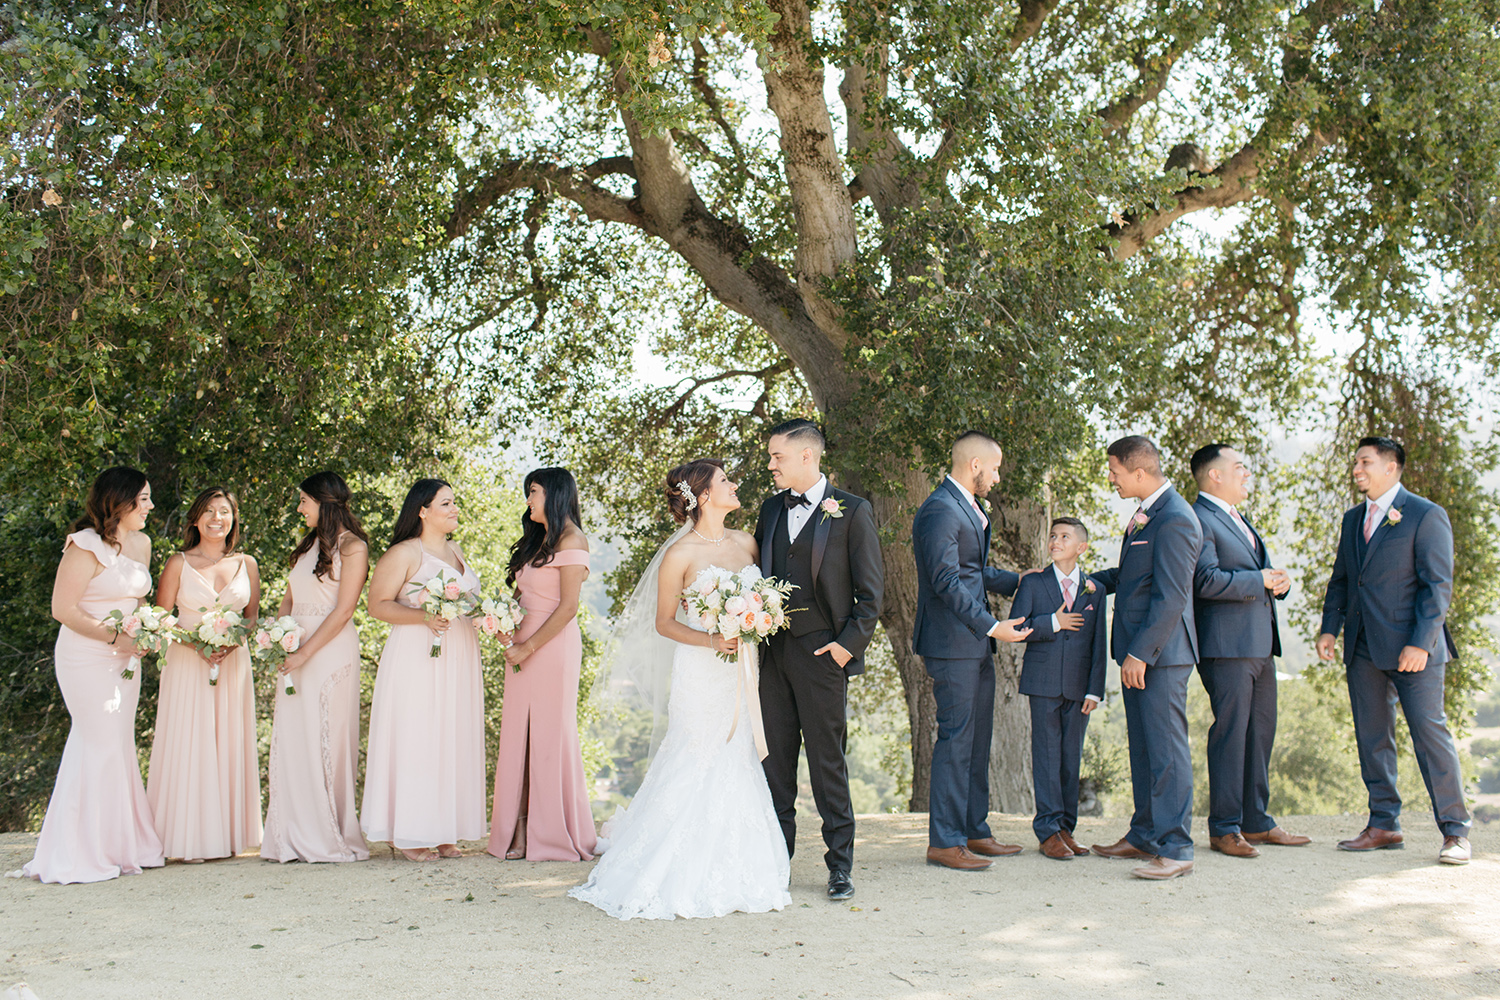 Bridesmaids dressed in blush gowns, groomsmen, bride and groom hanging out under a big tree.